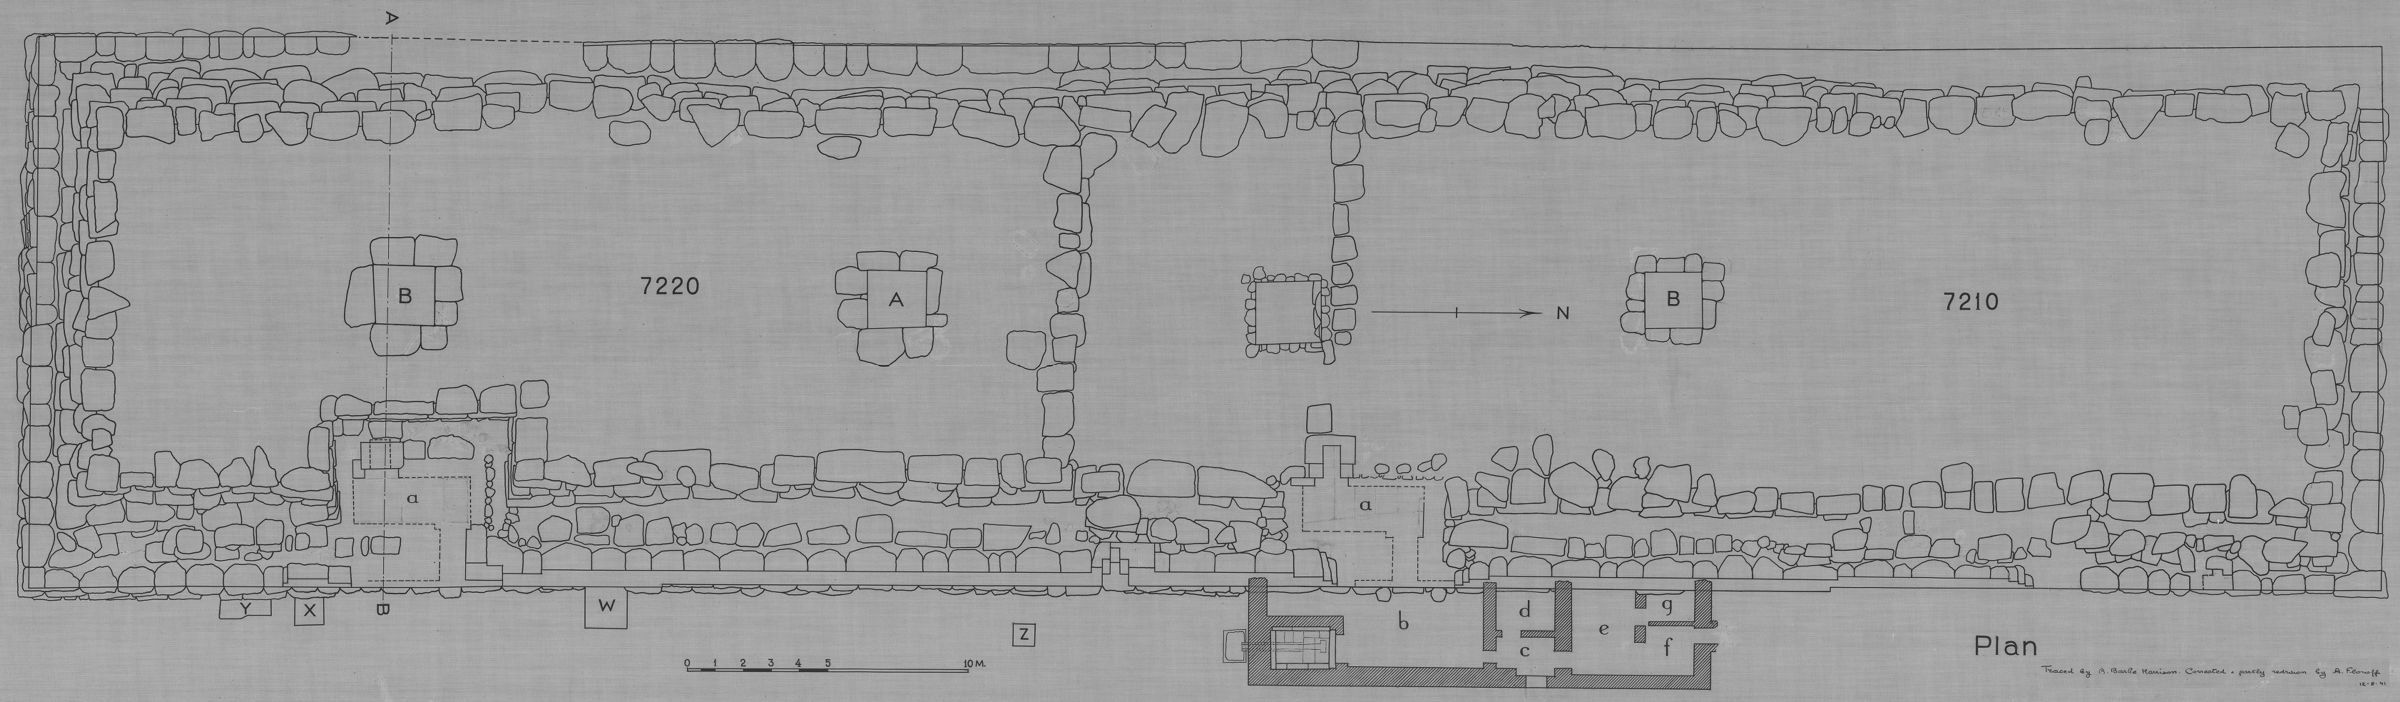 Maps and plans: Plan of G 7210-7220